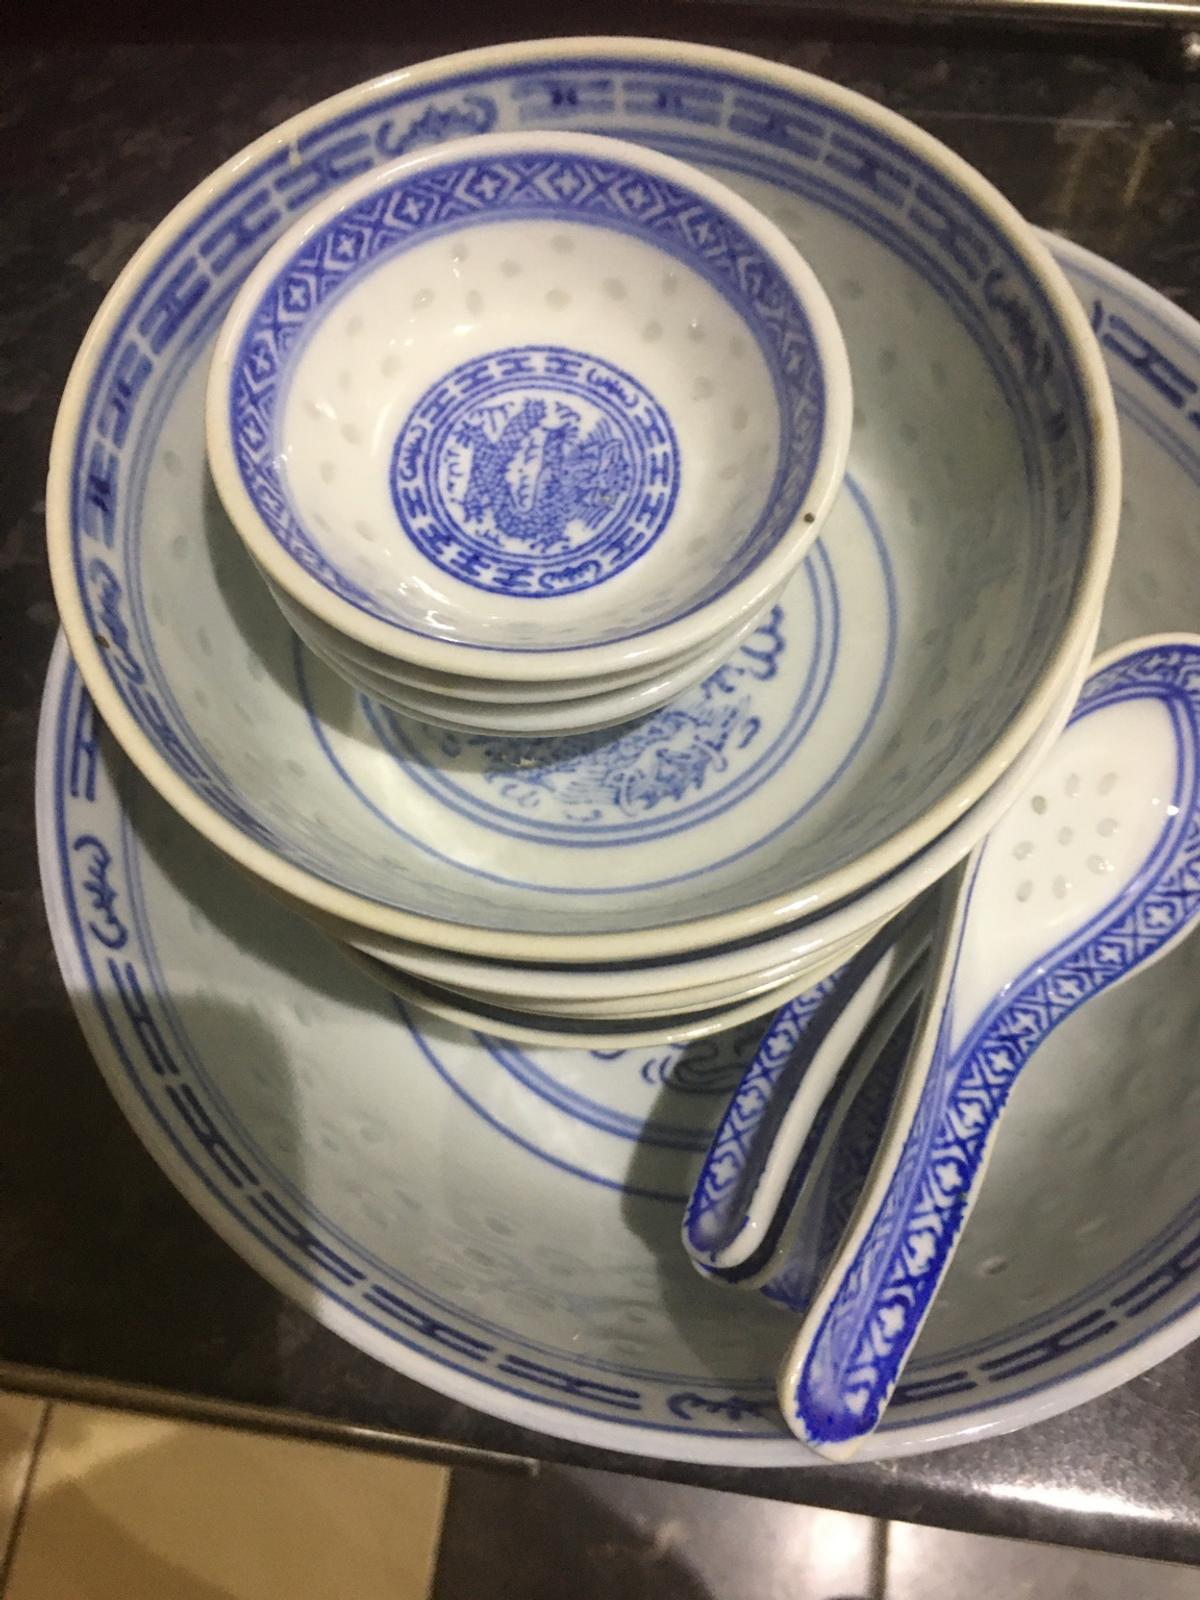 Just like new, with a large soup bowl, 5 small serving bowls with 4 chatney miniature bowls and matching 4 soup spoons